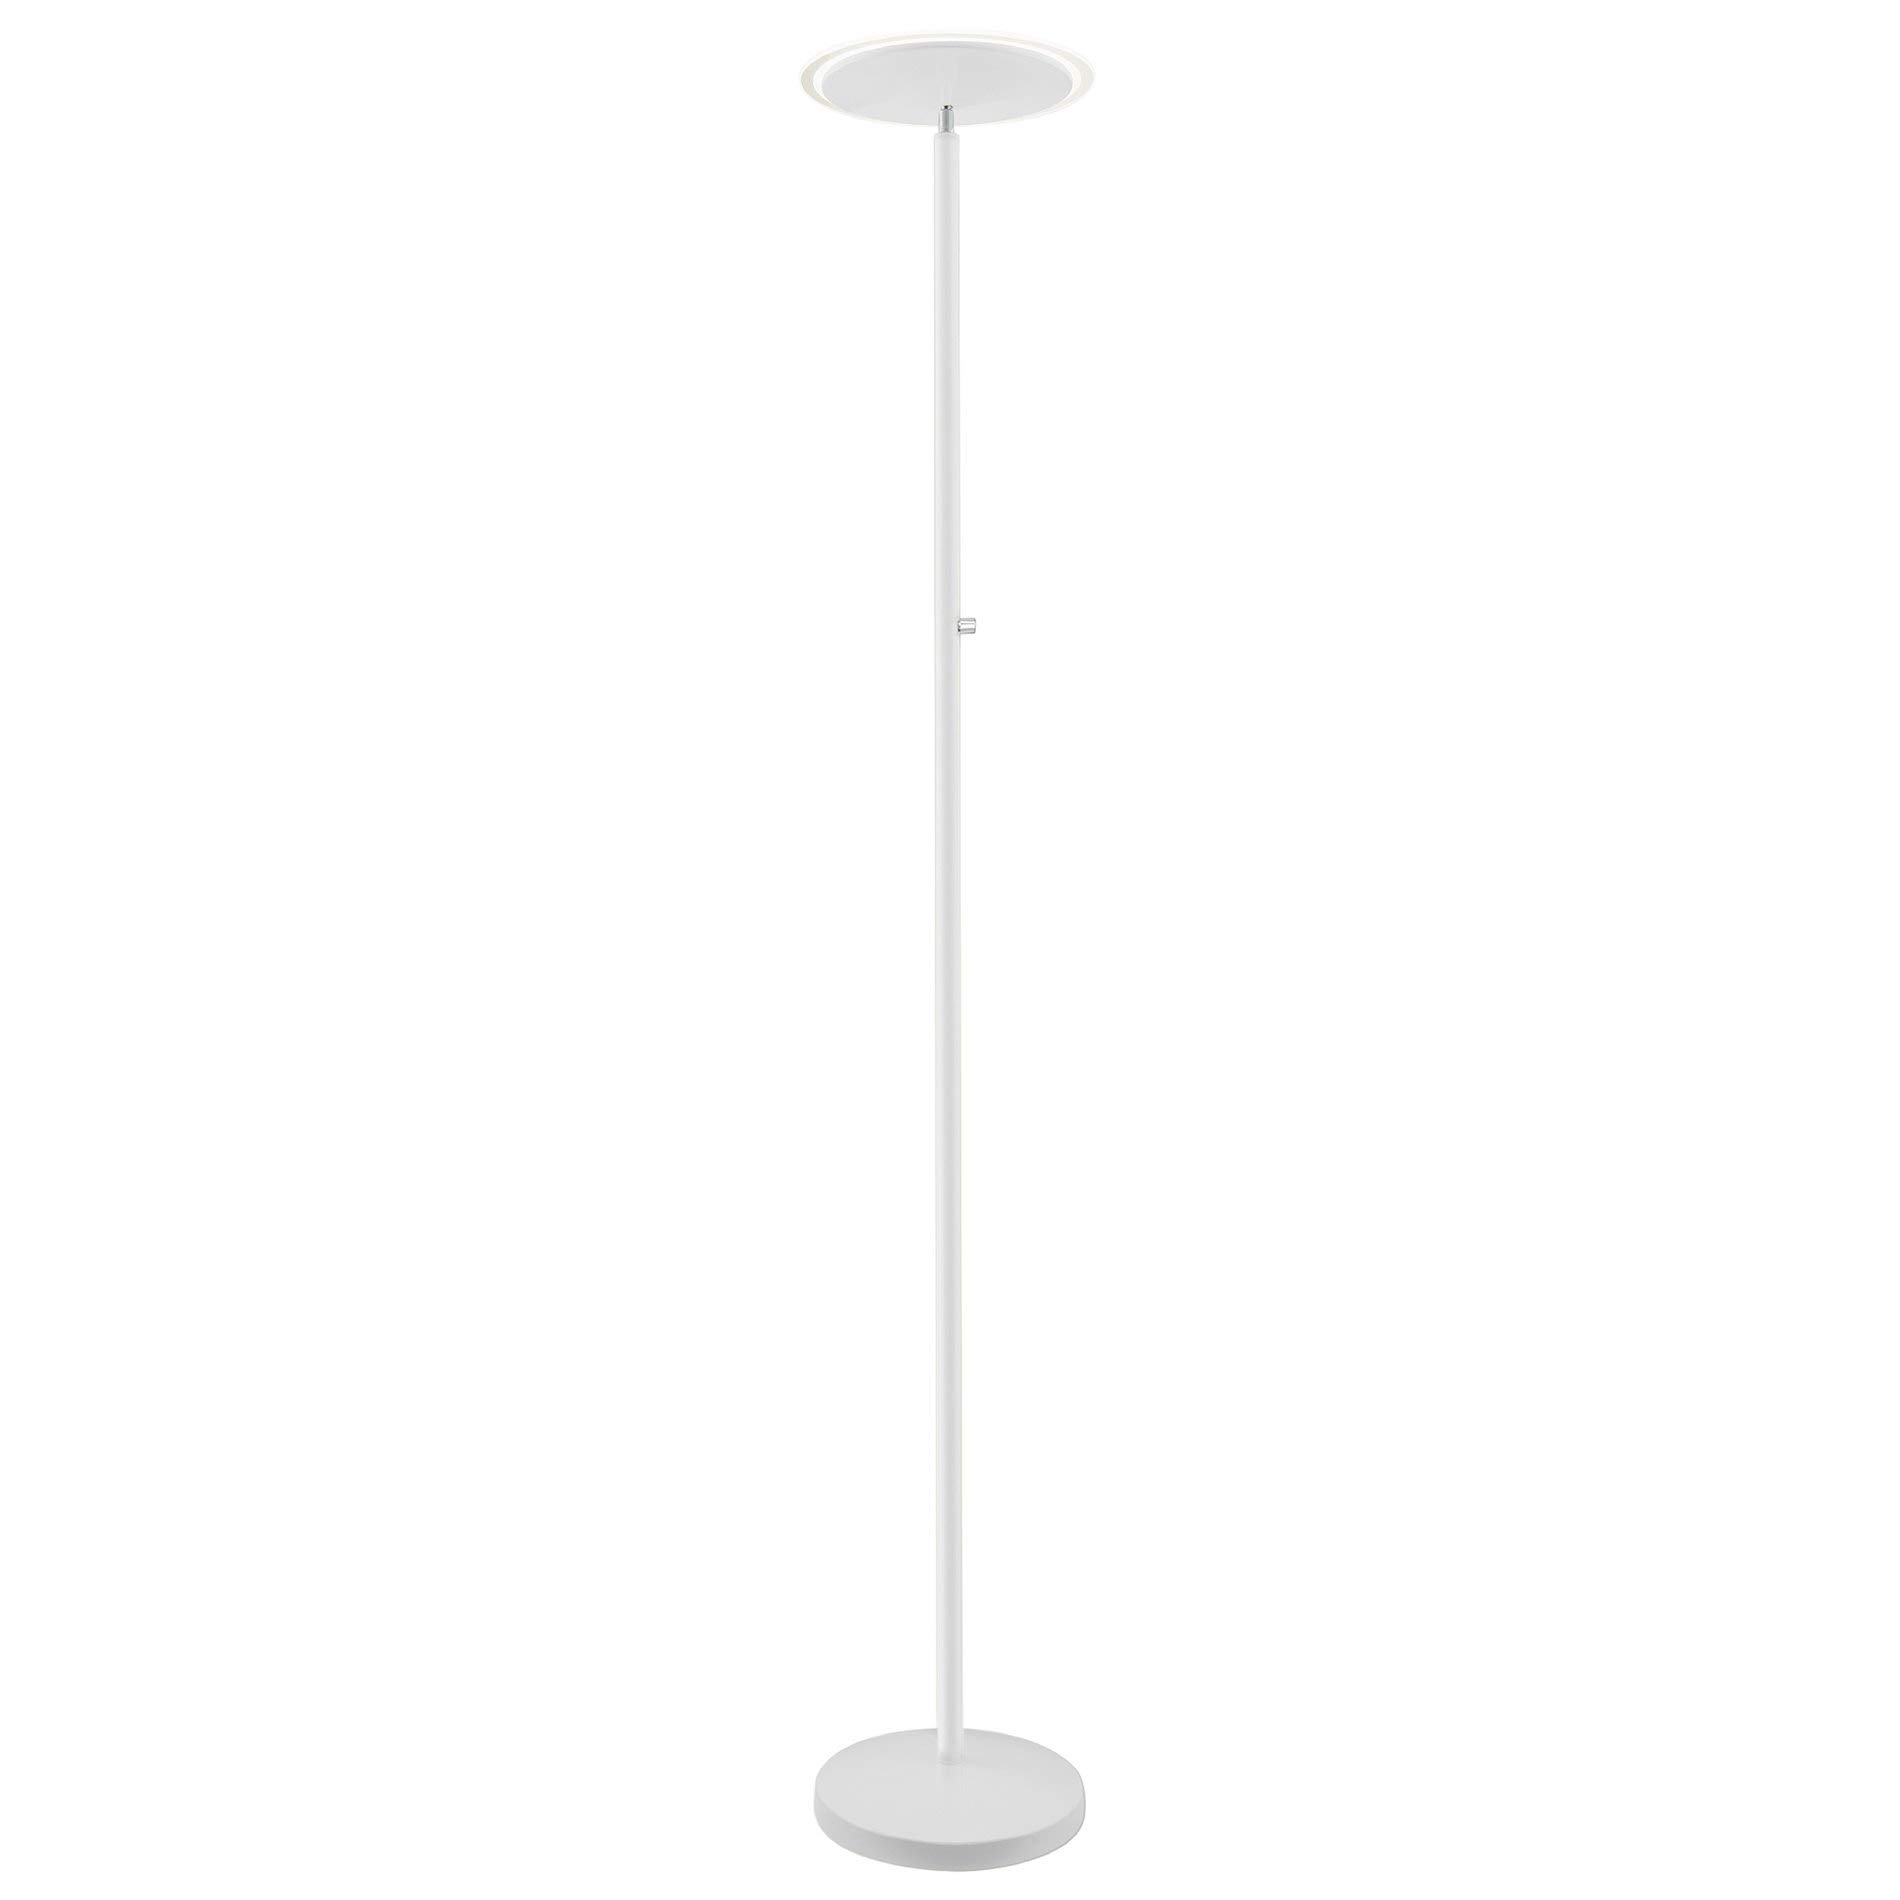 Kira Home Horizon 70'' Modern LED Torchiere Floor Lamp (36W, 300W eq.), Glass Diffuser, Dimmable, Timer and Wall Switch Compatible, Adjustable Head, 3000k Warm White Light, White Finish